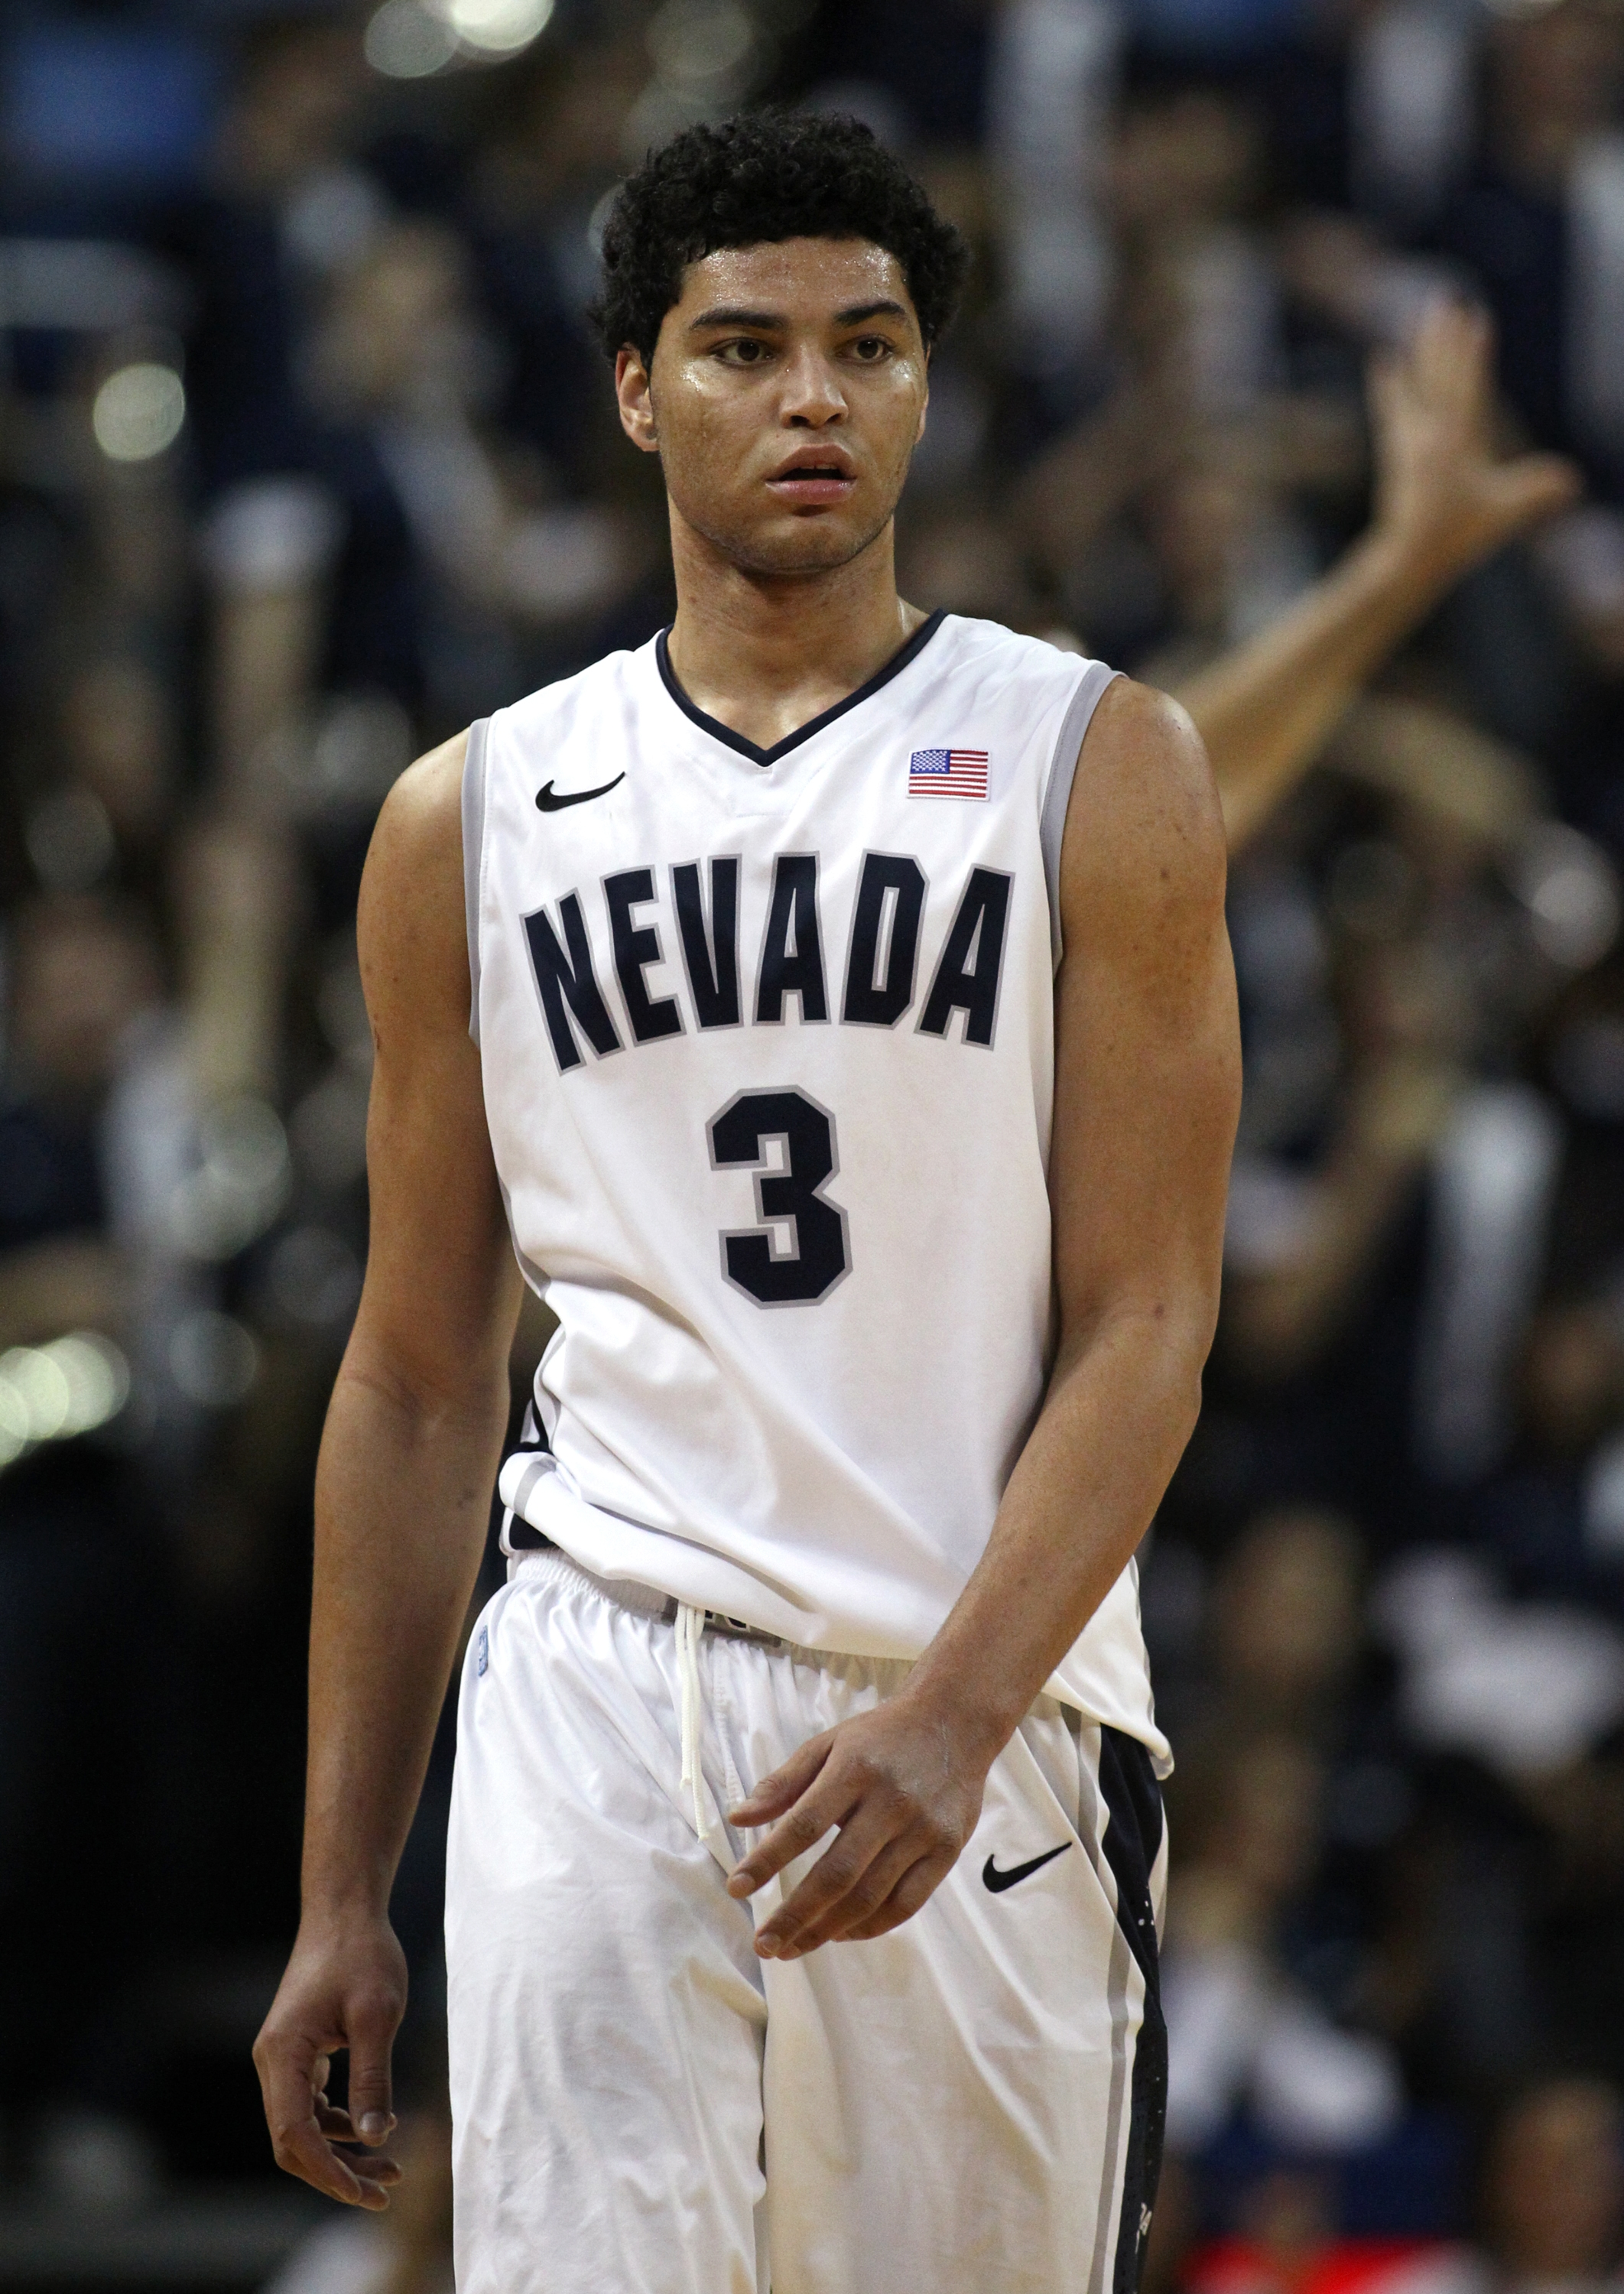 Nevada's AJ West competes in an NCAA basketball game against Air Force in Reno, Nev., on Saturday, Feb. 1, 2014. Nevada won 69-56 in overtime. (AP Photo/Cathleen Allison)